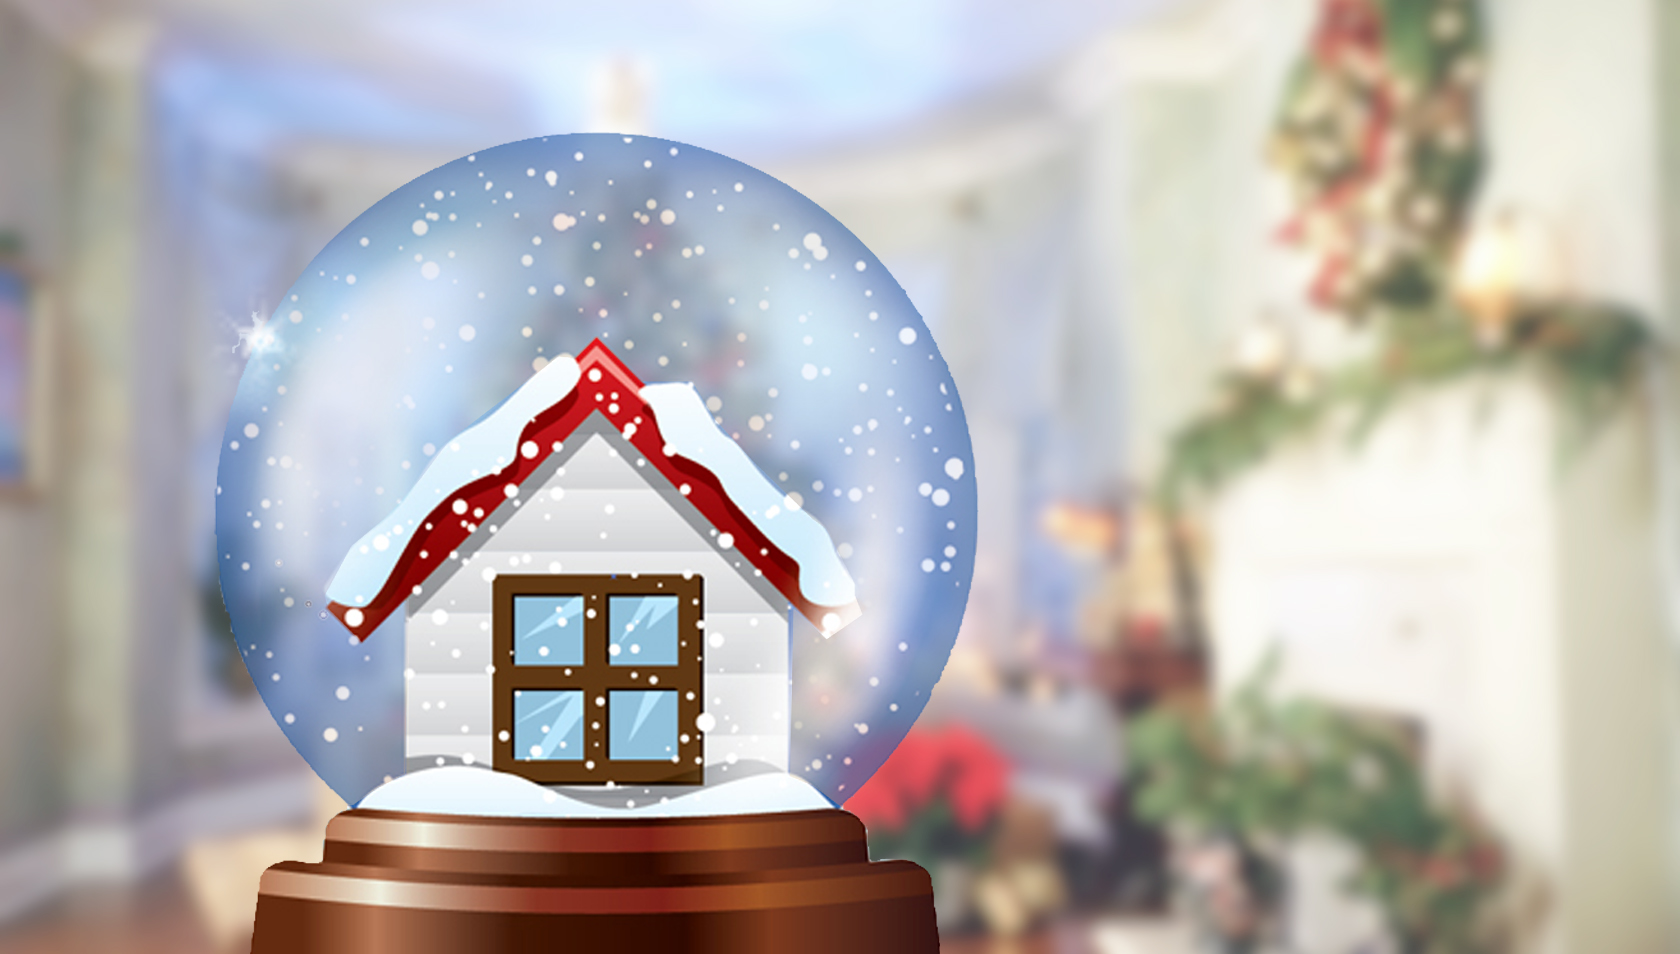 How To Create A Realistic Snow Globe In Adobe Illustrator